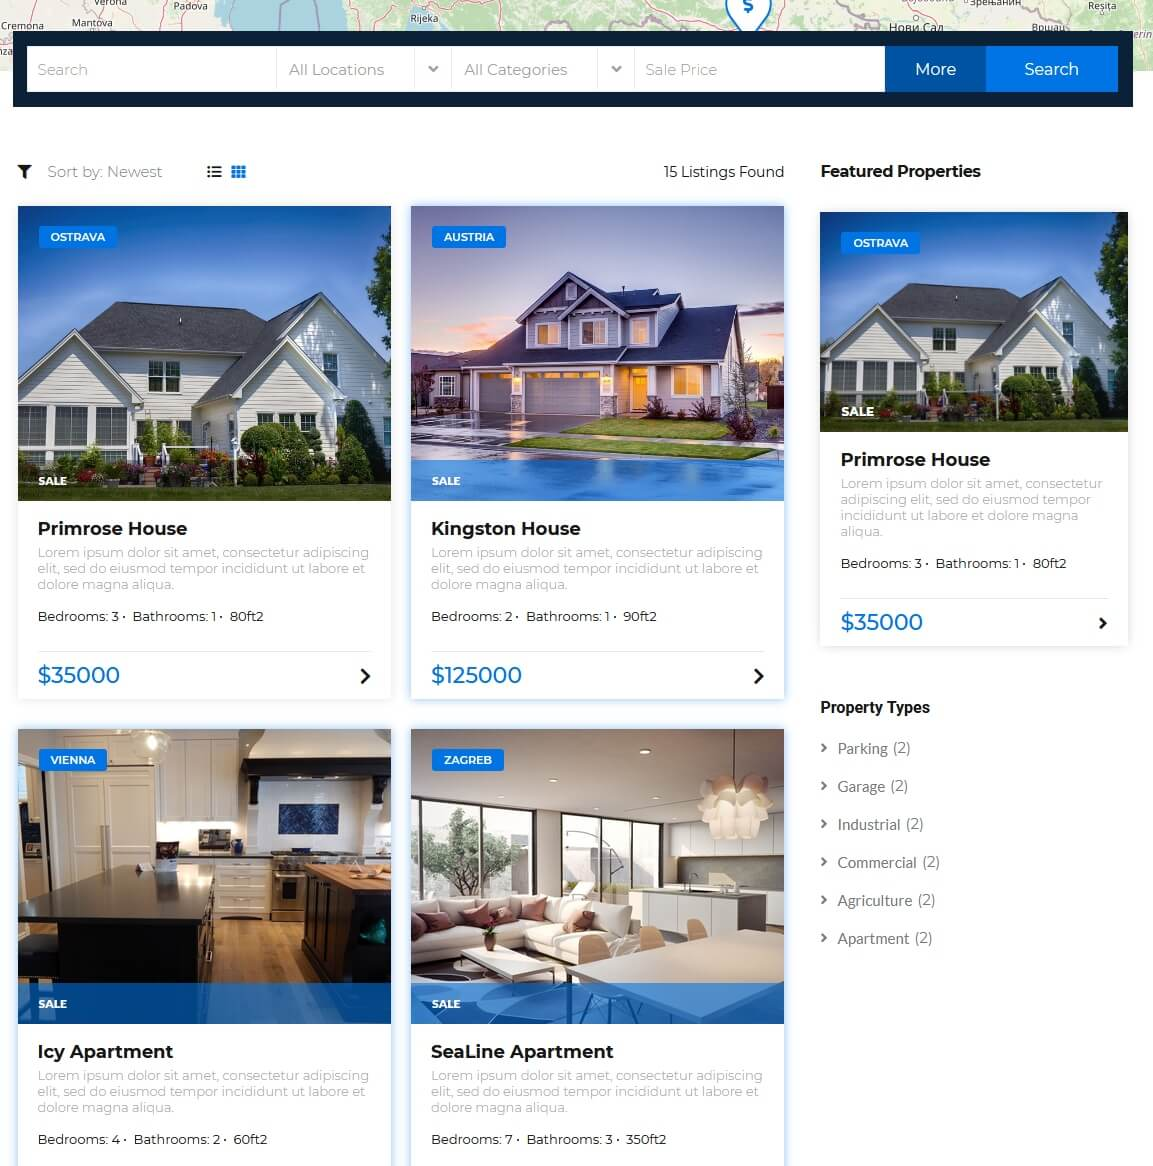 Search Form, Results with listings, Featured Listings and Categories